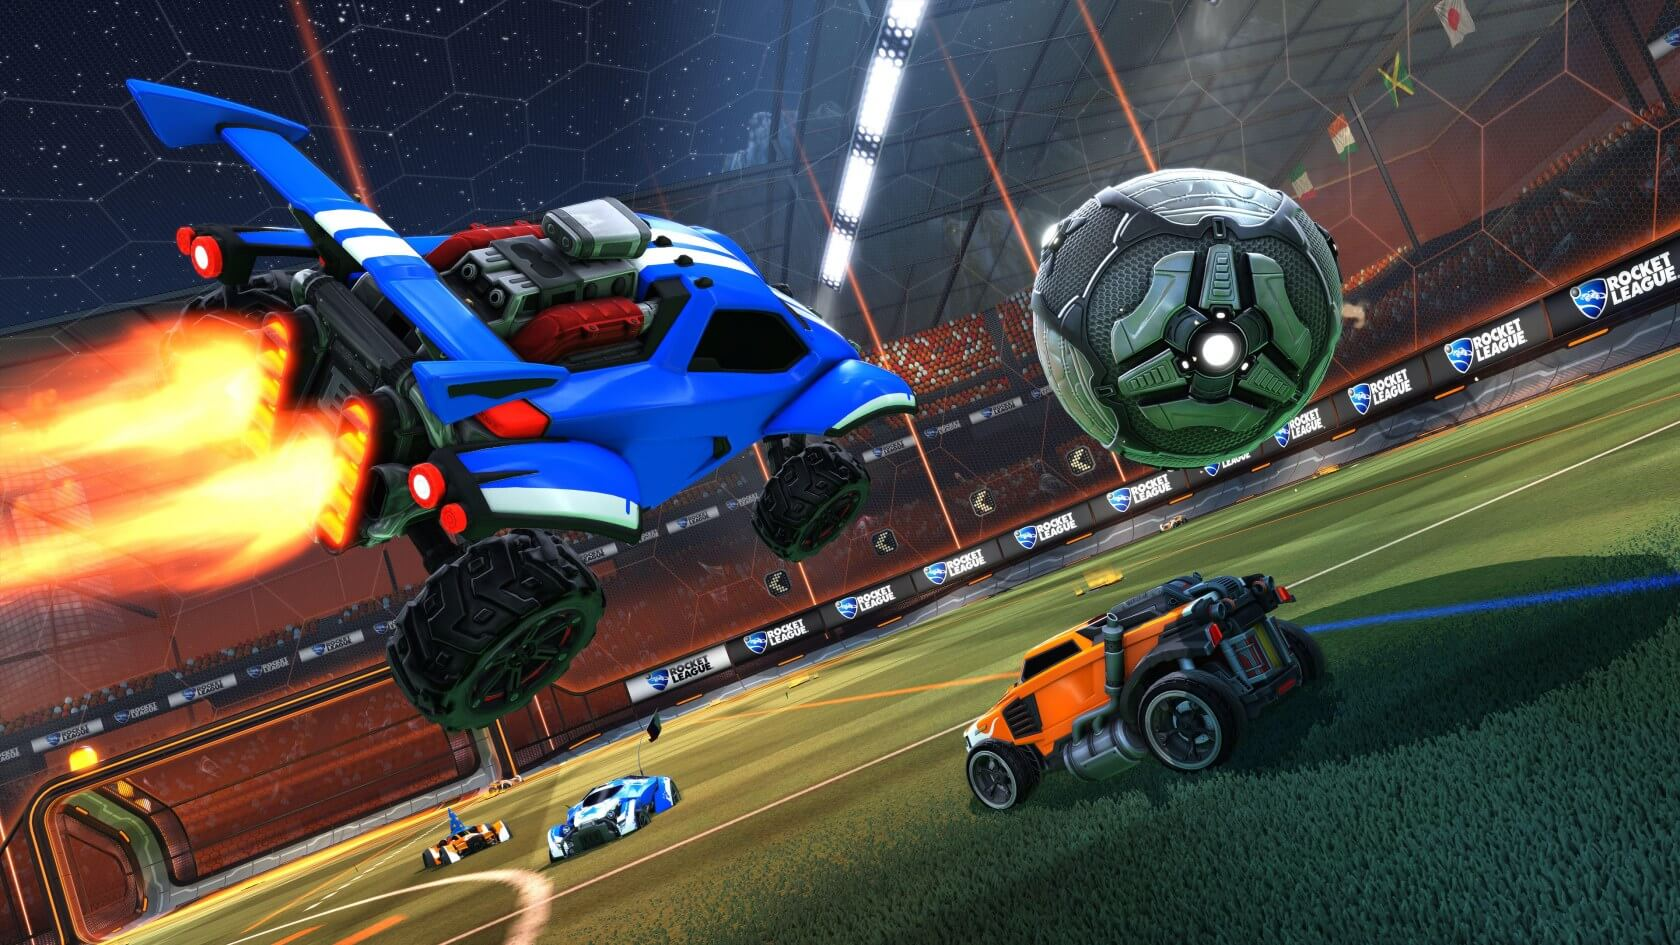 Psyonix will drop support for Rocket League in macOS and Linux come March